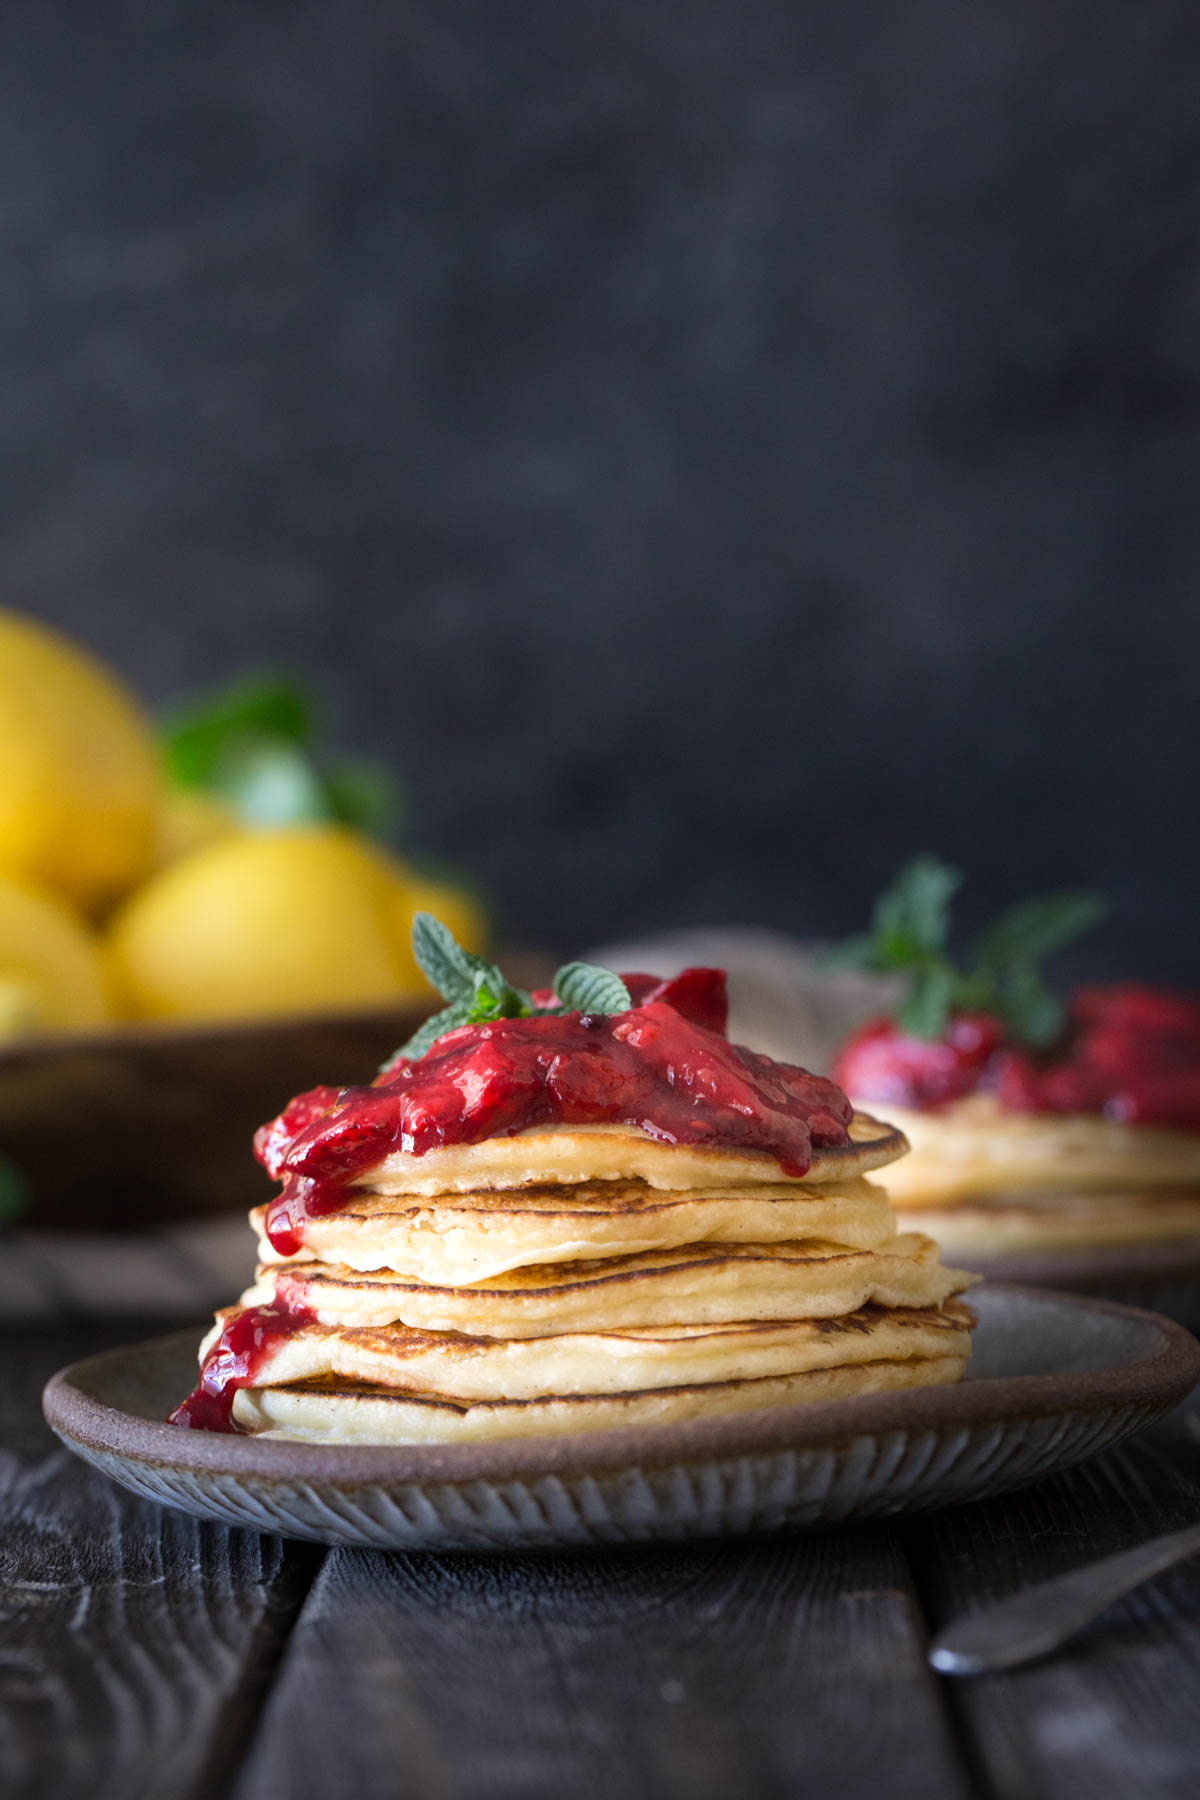 A stack of Lemon Ricotta pancakes with fresh berry sauce on a grey background.